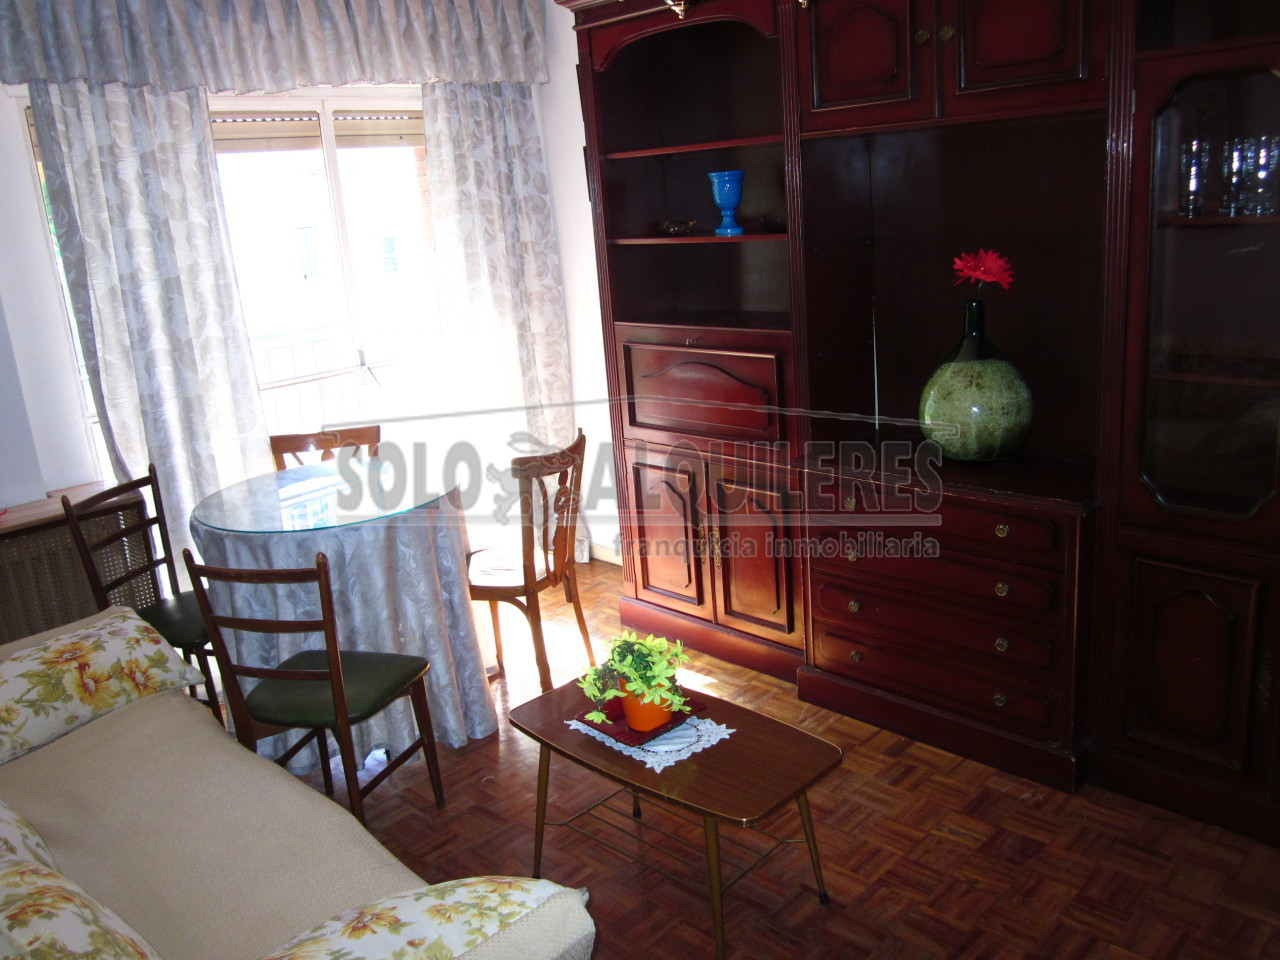 flat-for-rent-in-calle-berruguete-madrid